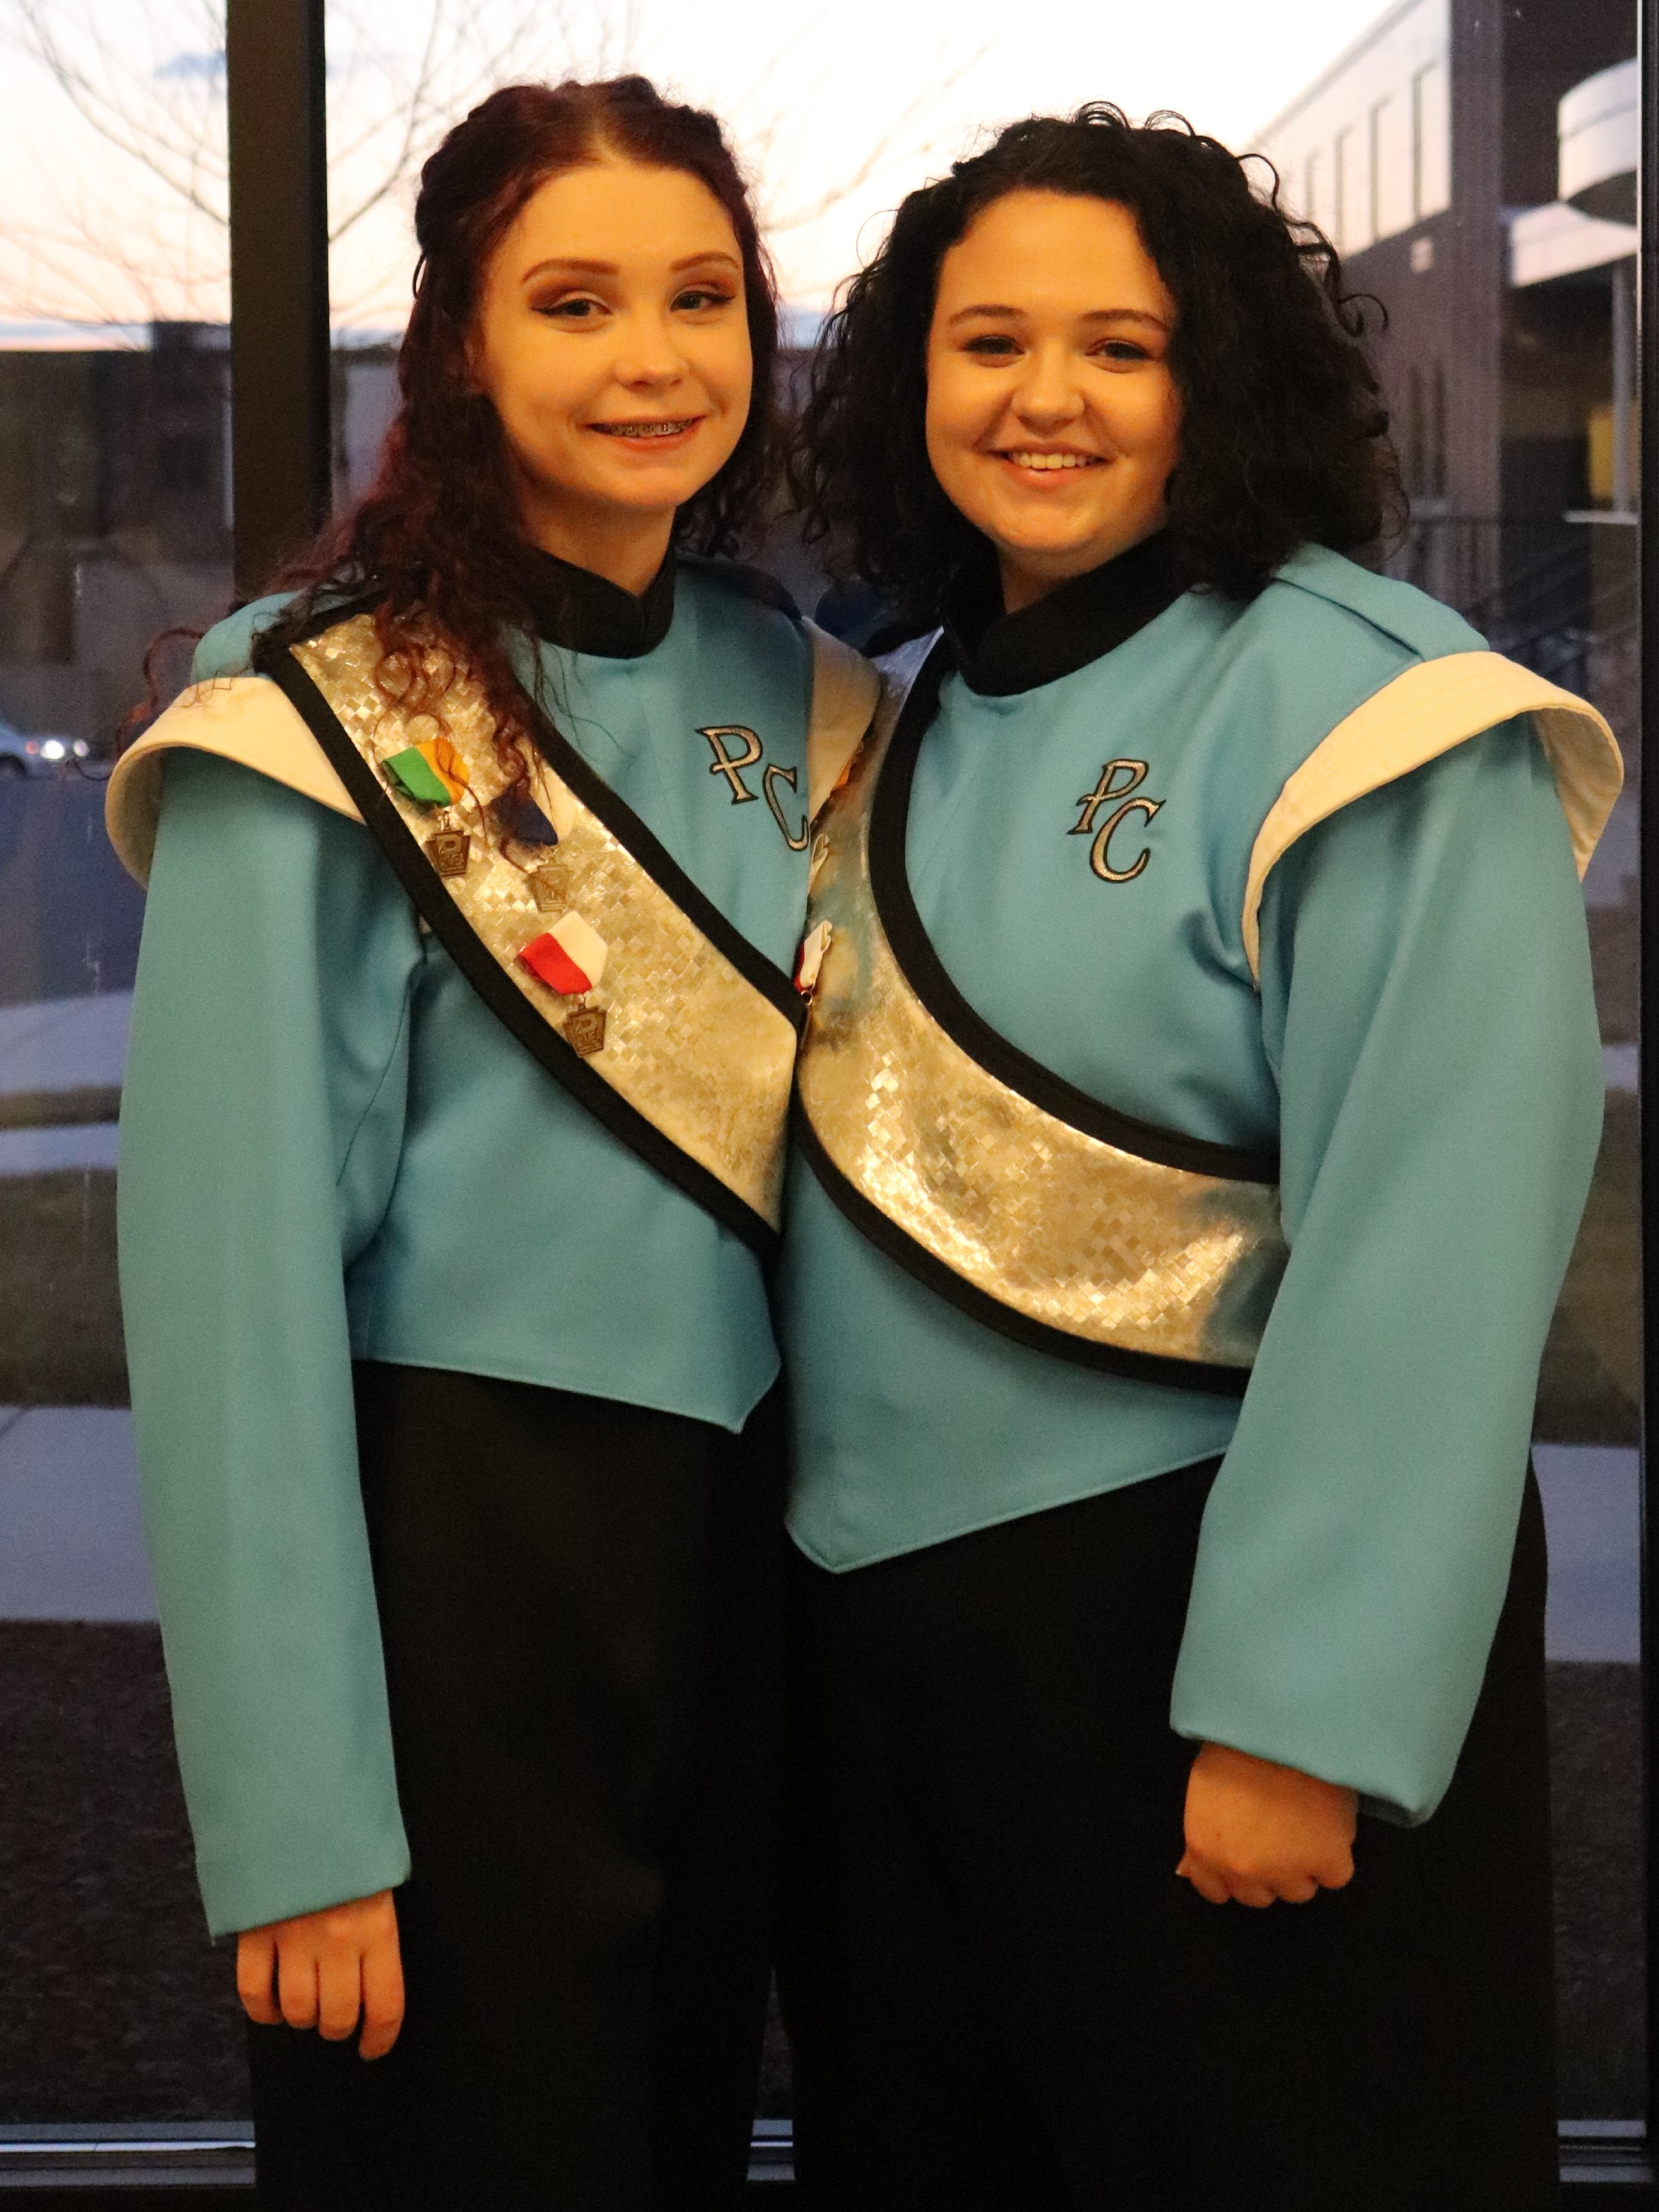 Morgan McConnell and Emily Riggleman performed February 14 at the PMEA District 6 concert in Everett.